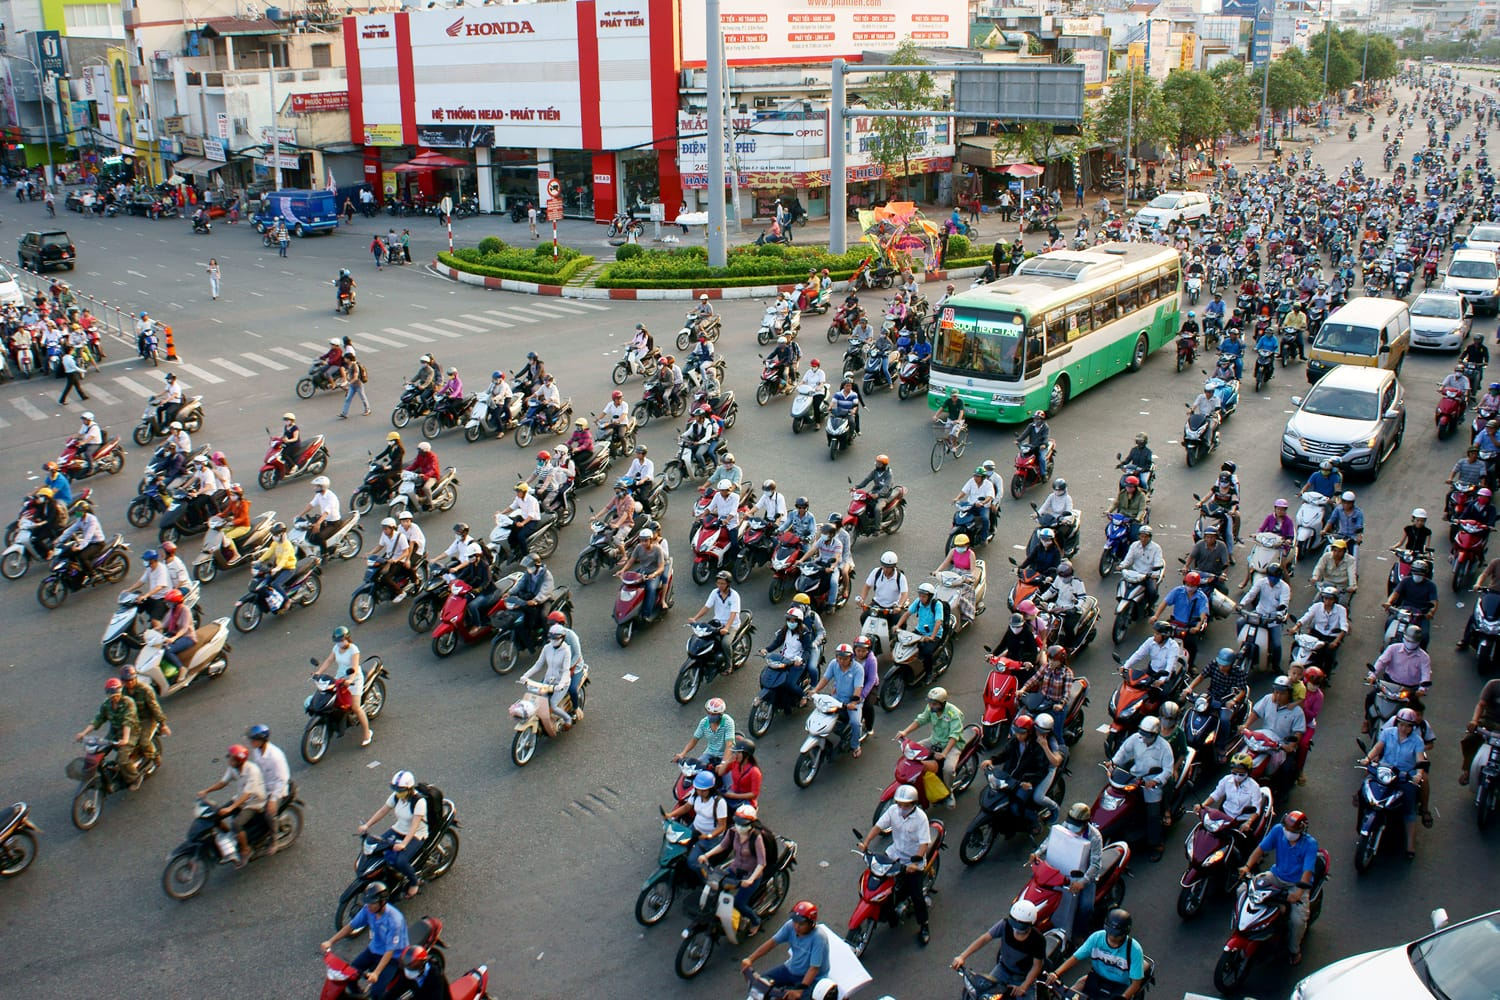 Traffic jam in Ho Chi Minh City, Vietnam